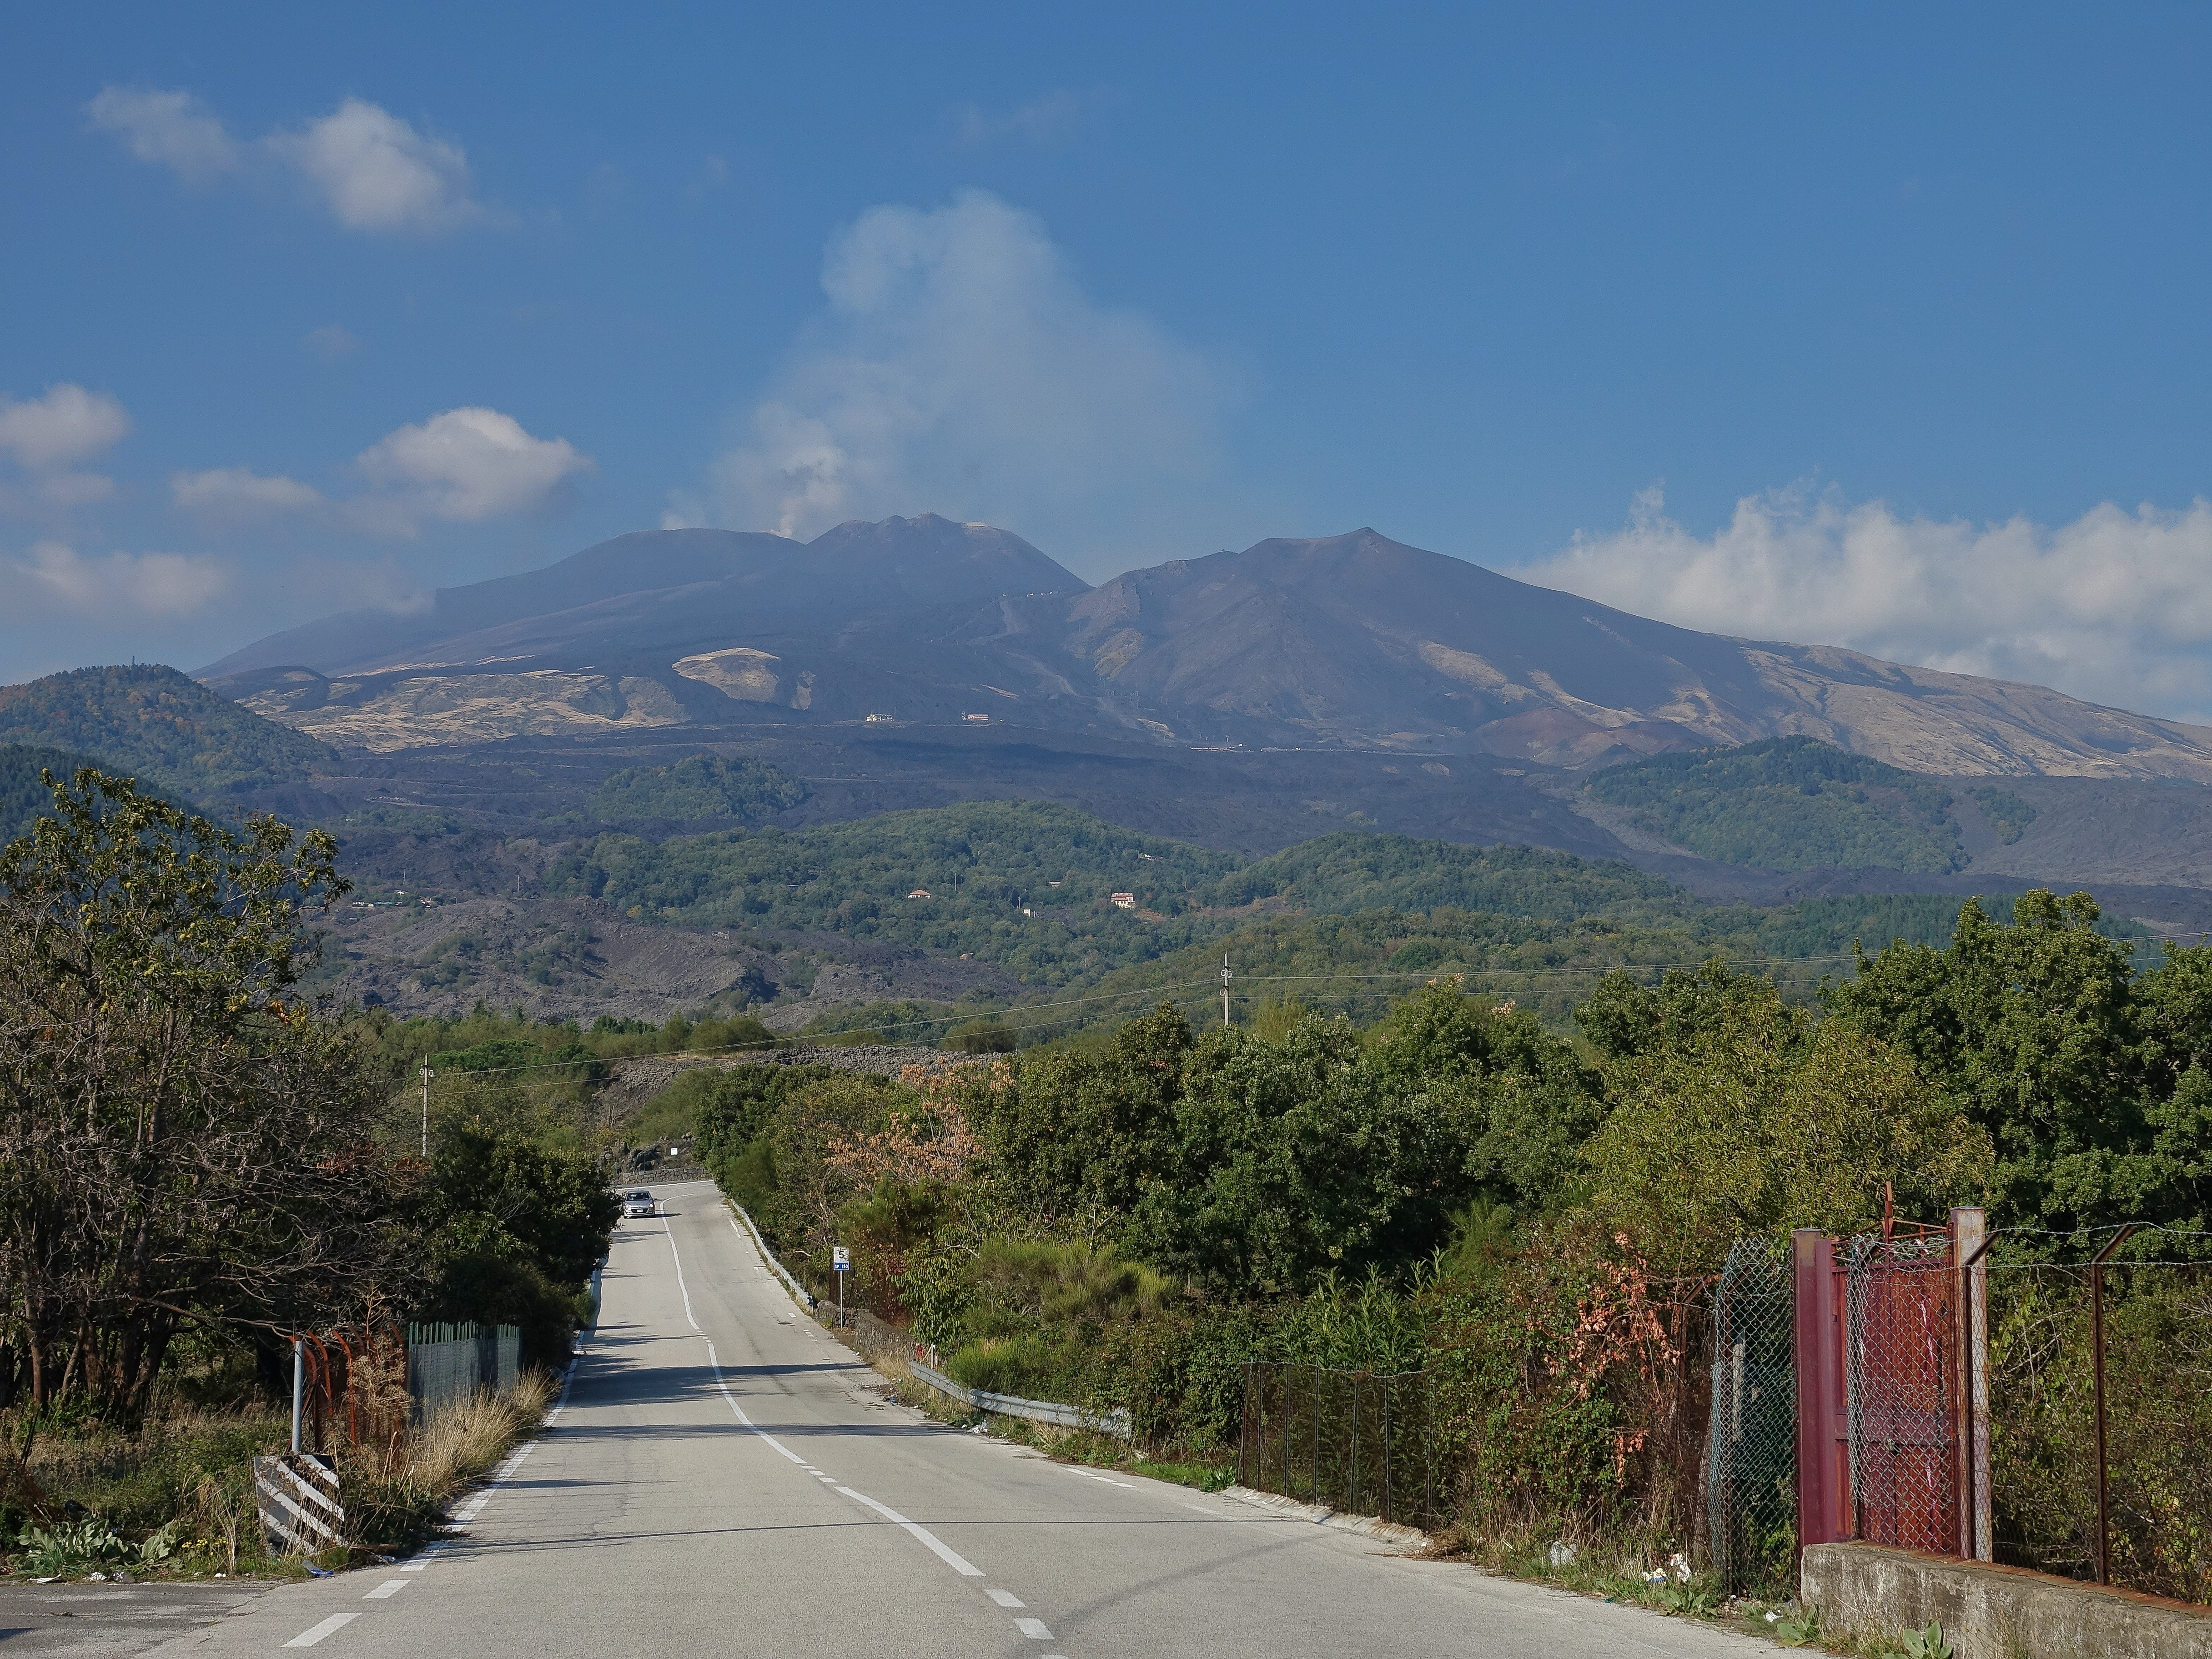 Mt Etna, spewing away from one of its cones